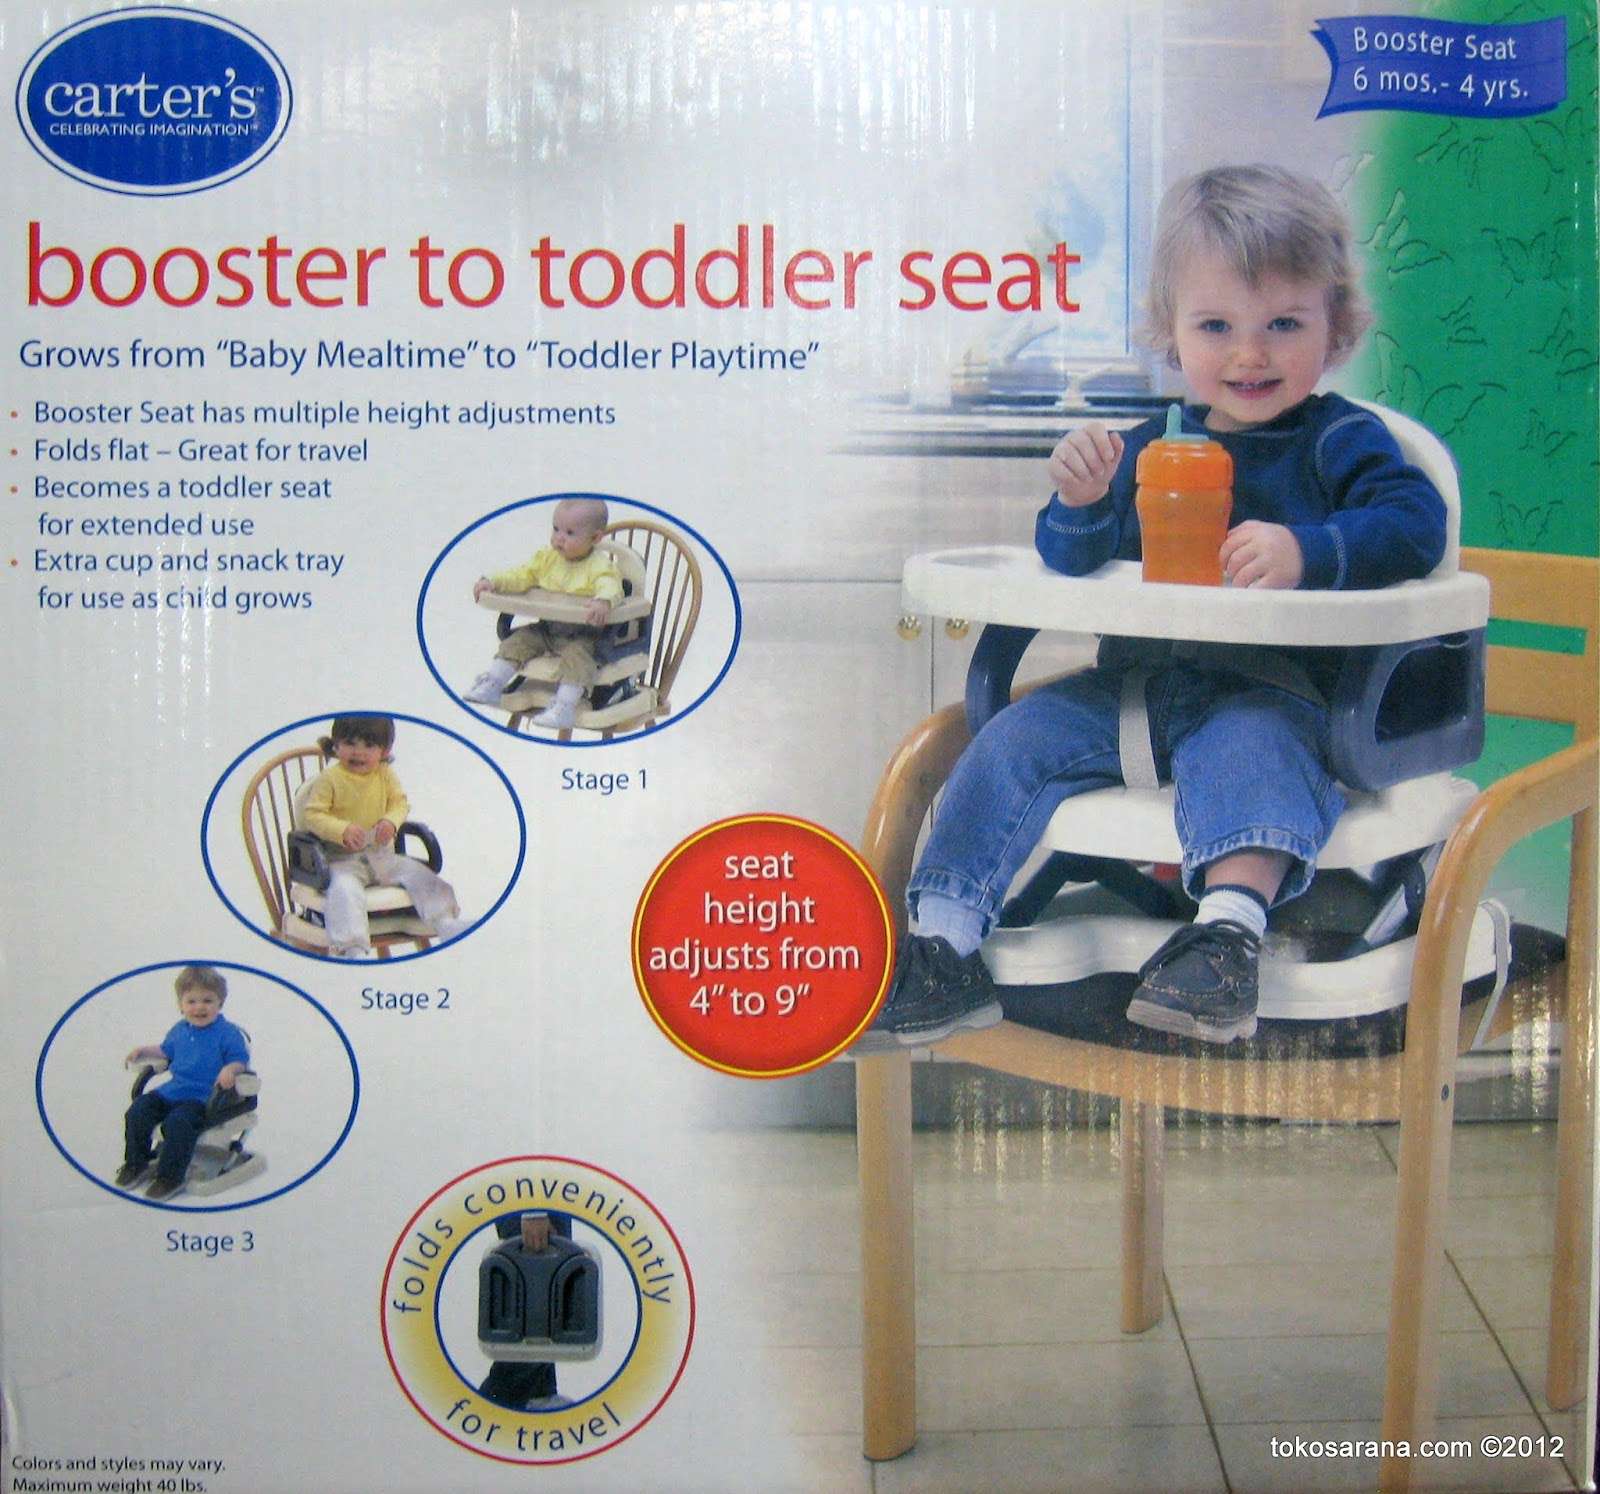 toddler chairs target oversized aluminum rocking chair carter 39s booster to seat news untuk anak anda